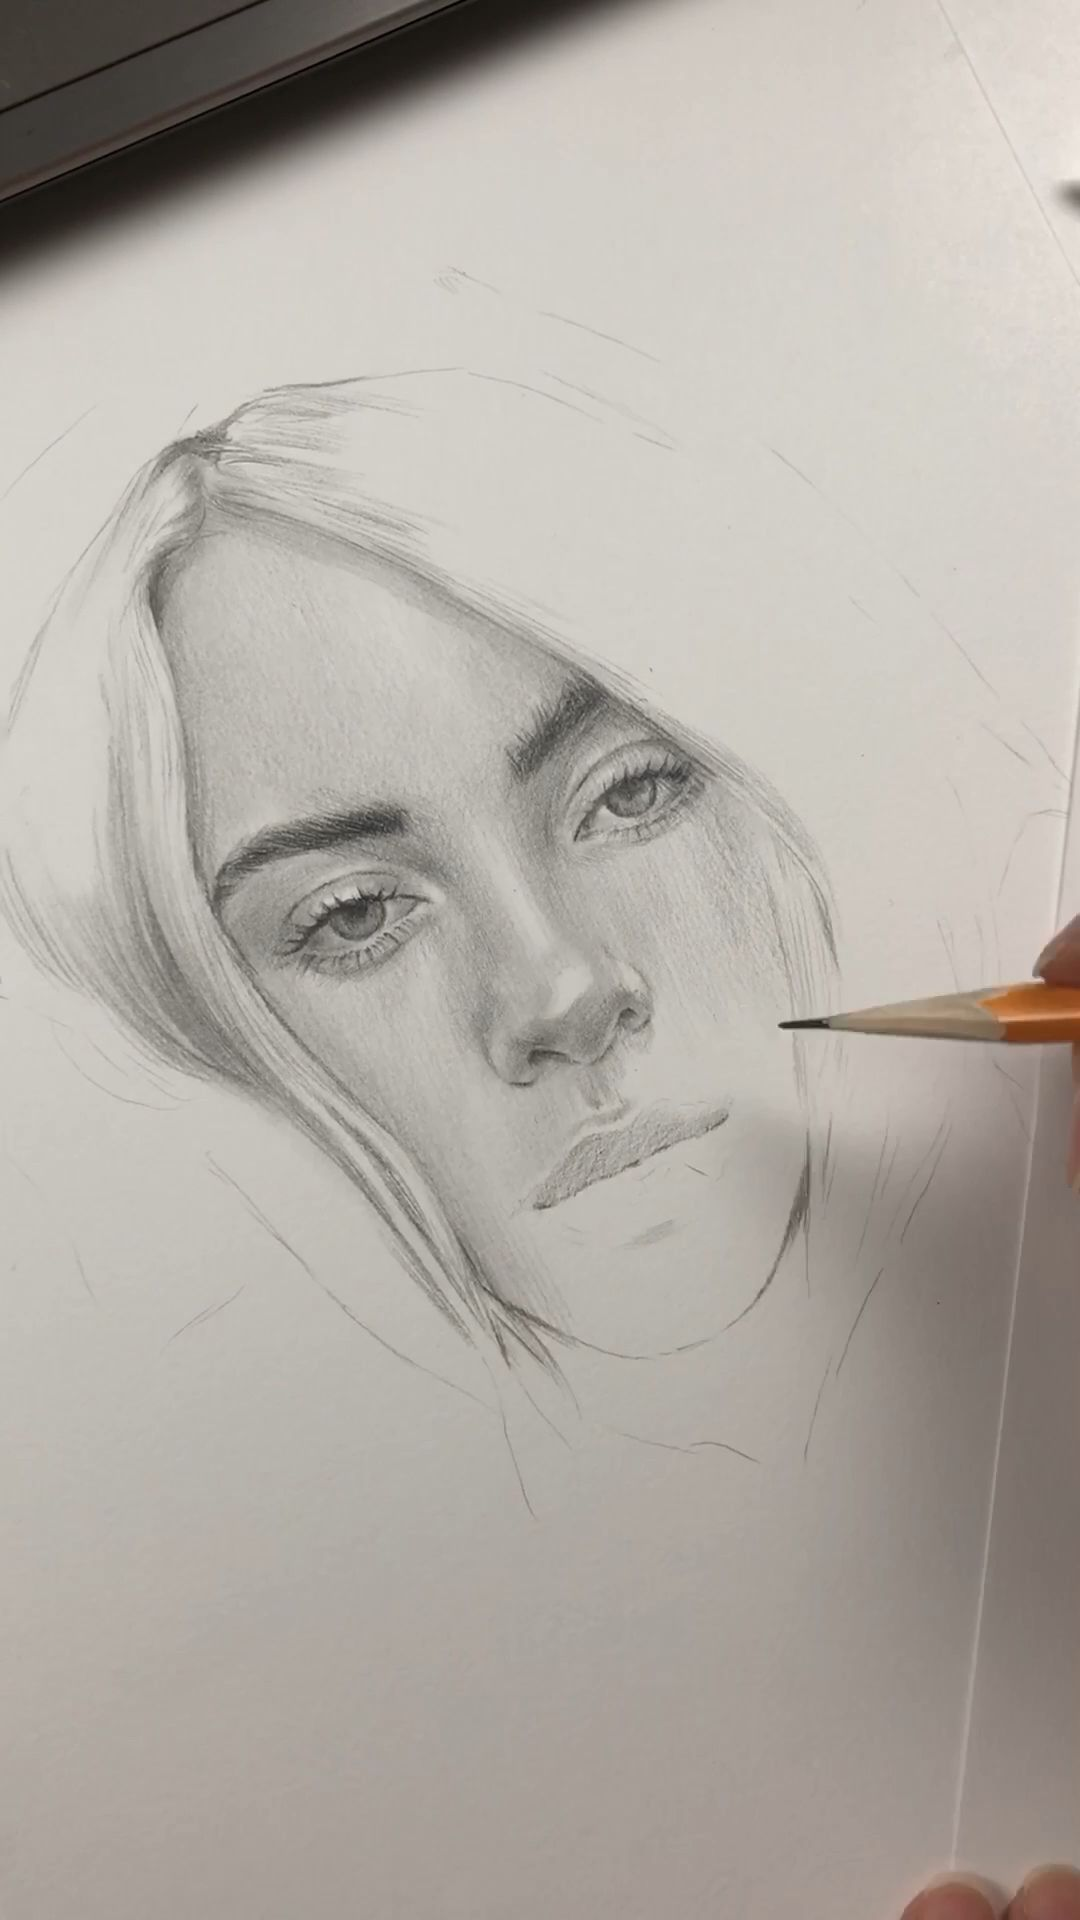 WIP time lapse video of drawing portrait of Billie Eilish by Nadia Coolrista#billie #coolrista #drawing #eilish #lapse #nadia #portrait #time #video #wip